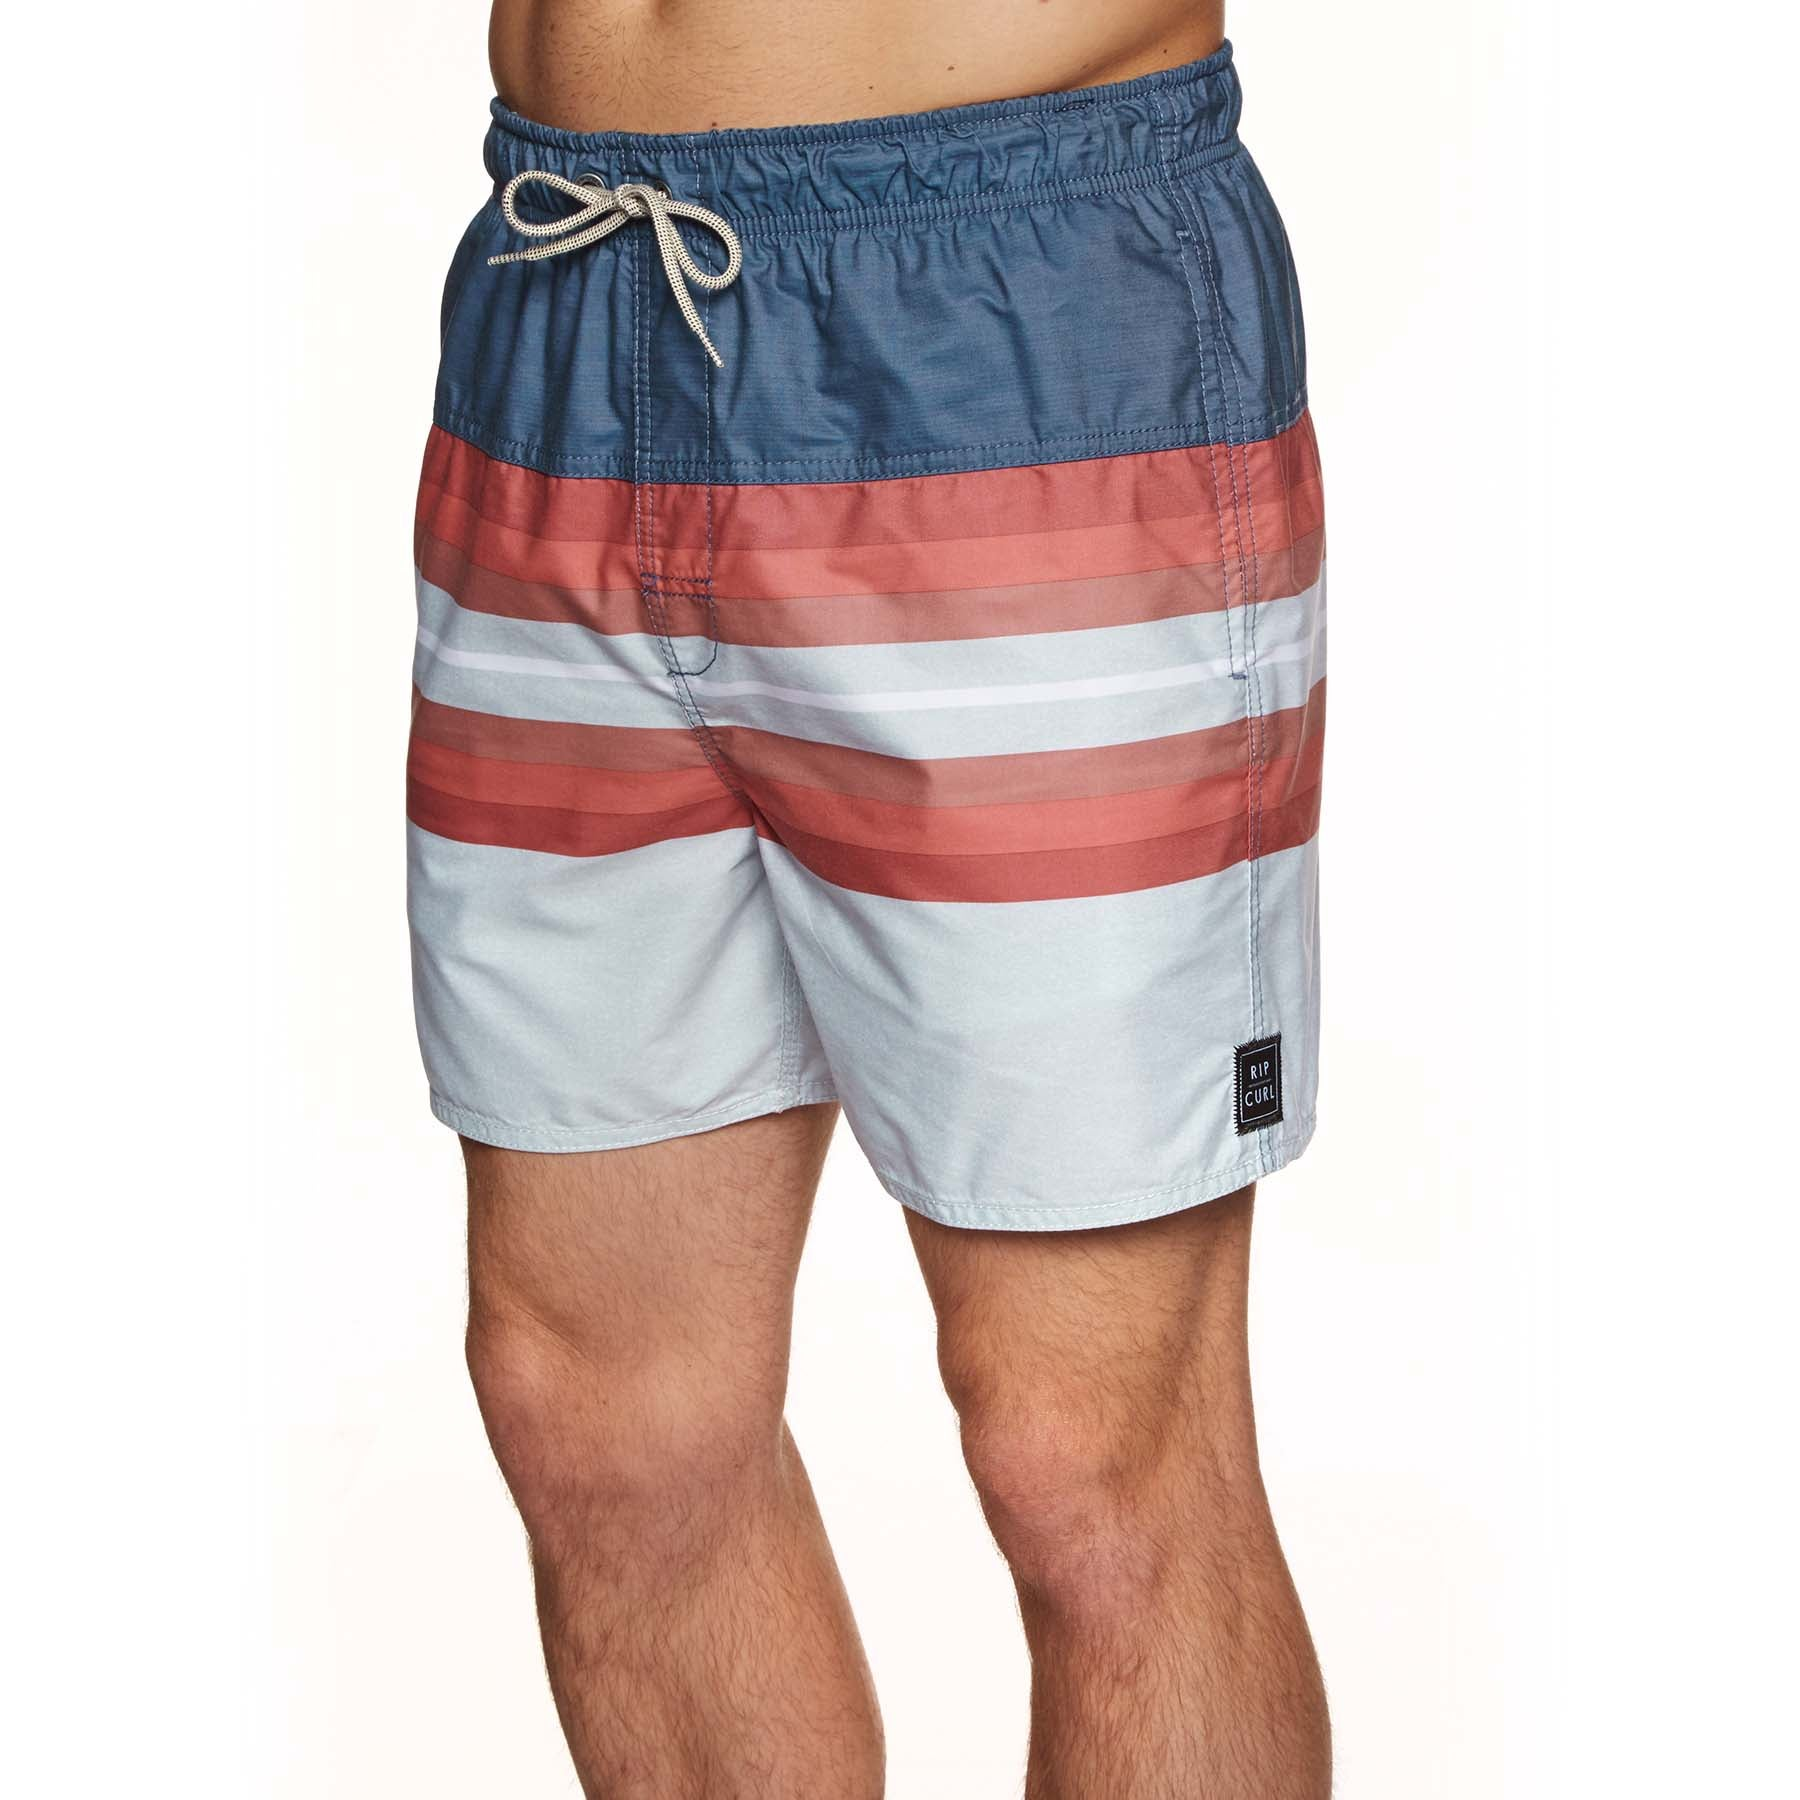 Rip Curl Volley Step 16 Boardshorts - Navy